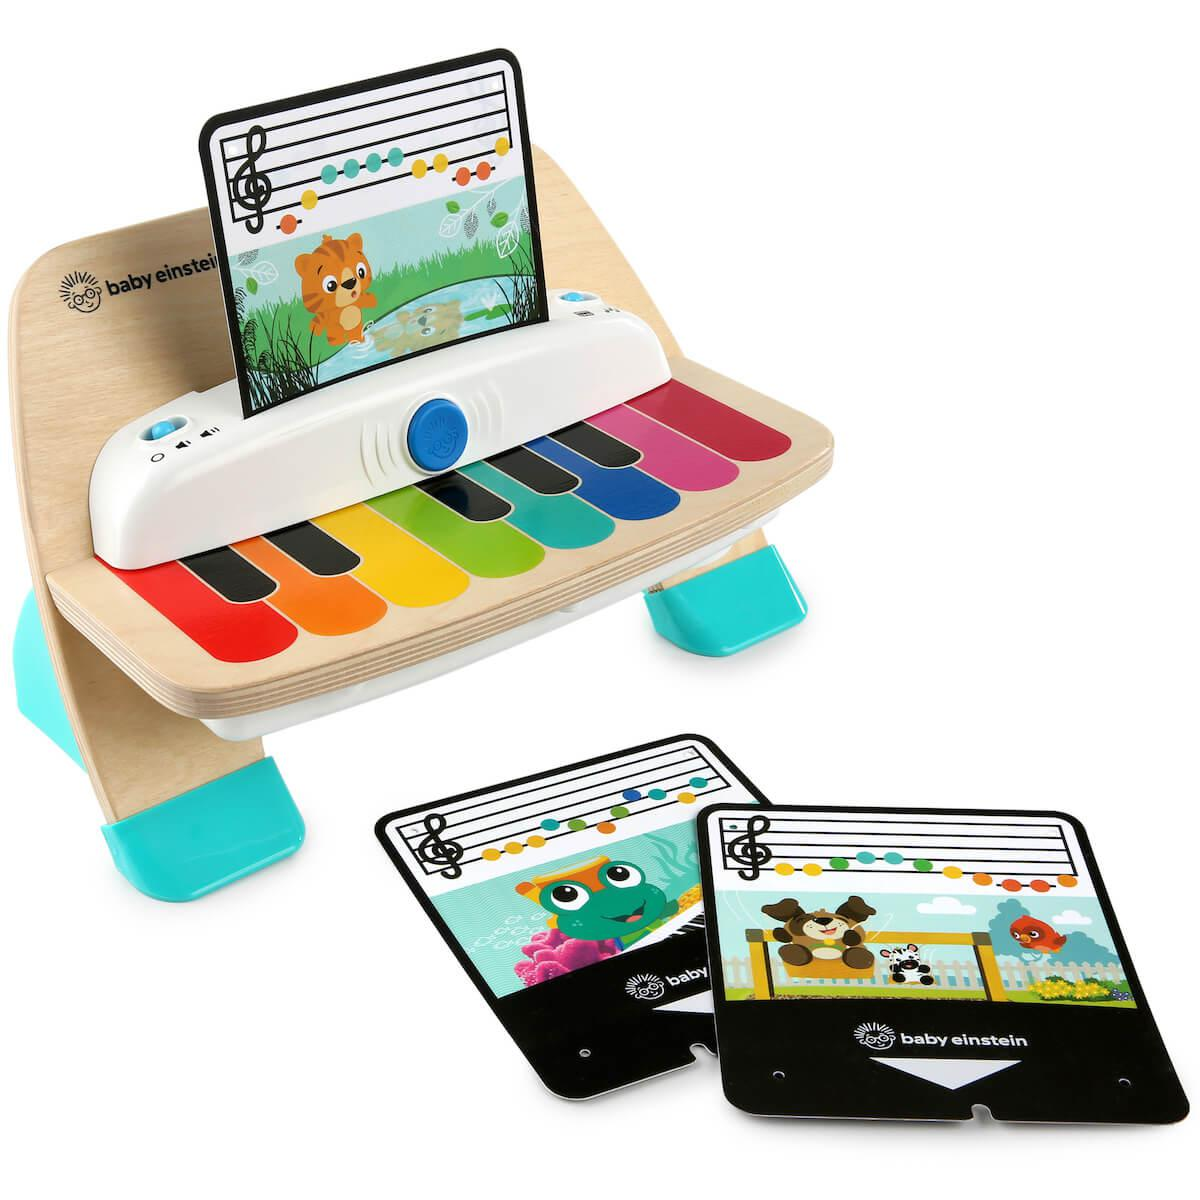 Instrument musique MAGIC TOUCH PIANO BABY EINSTEIN Hape